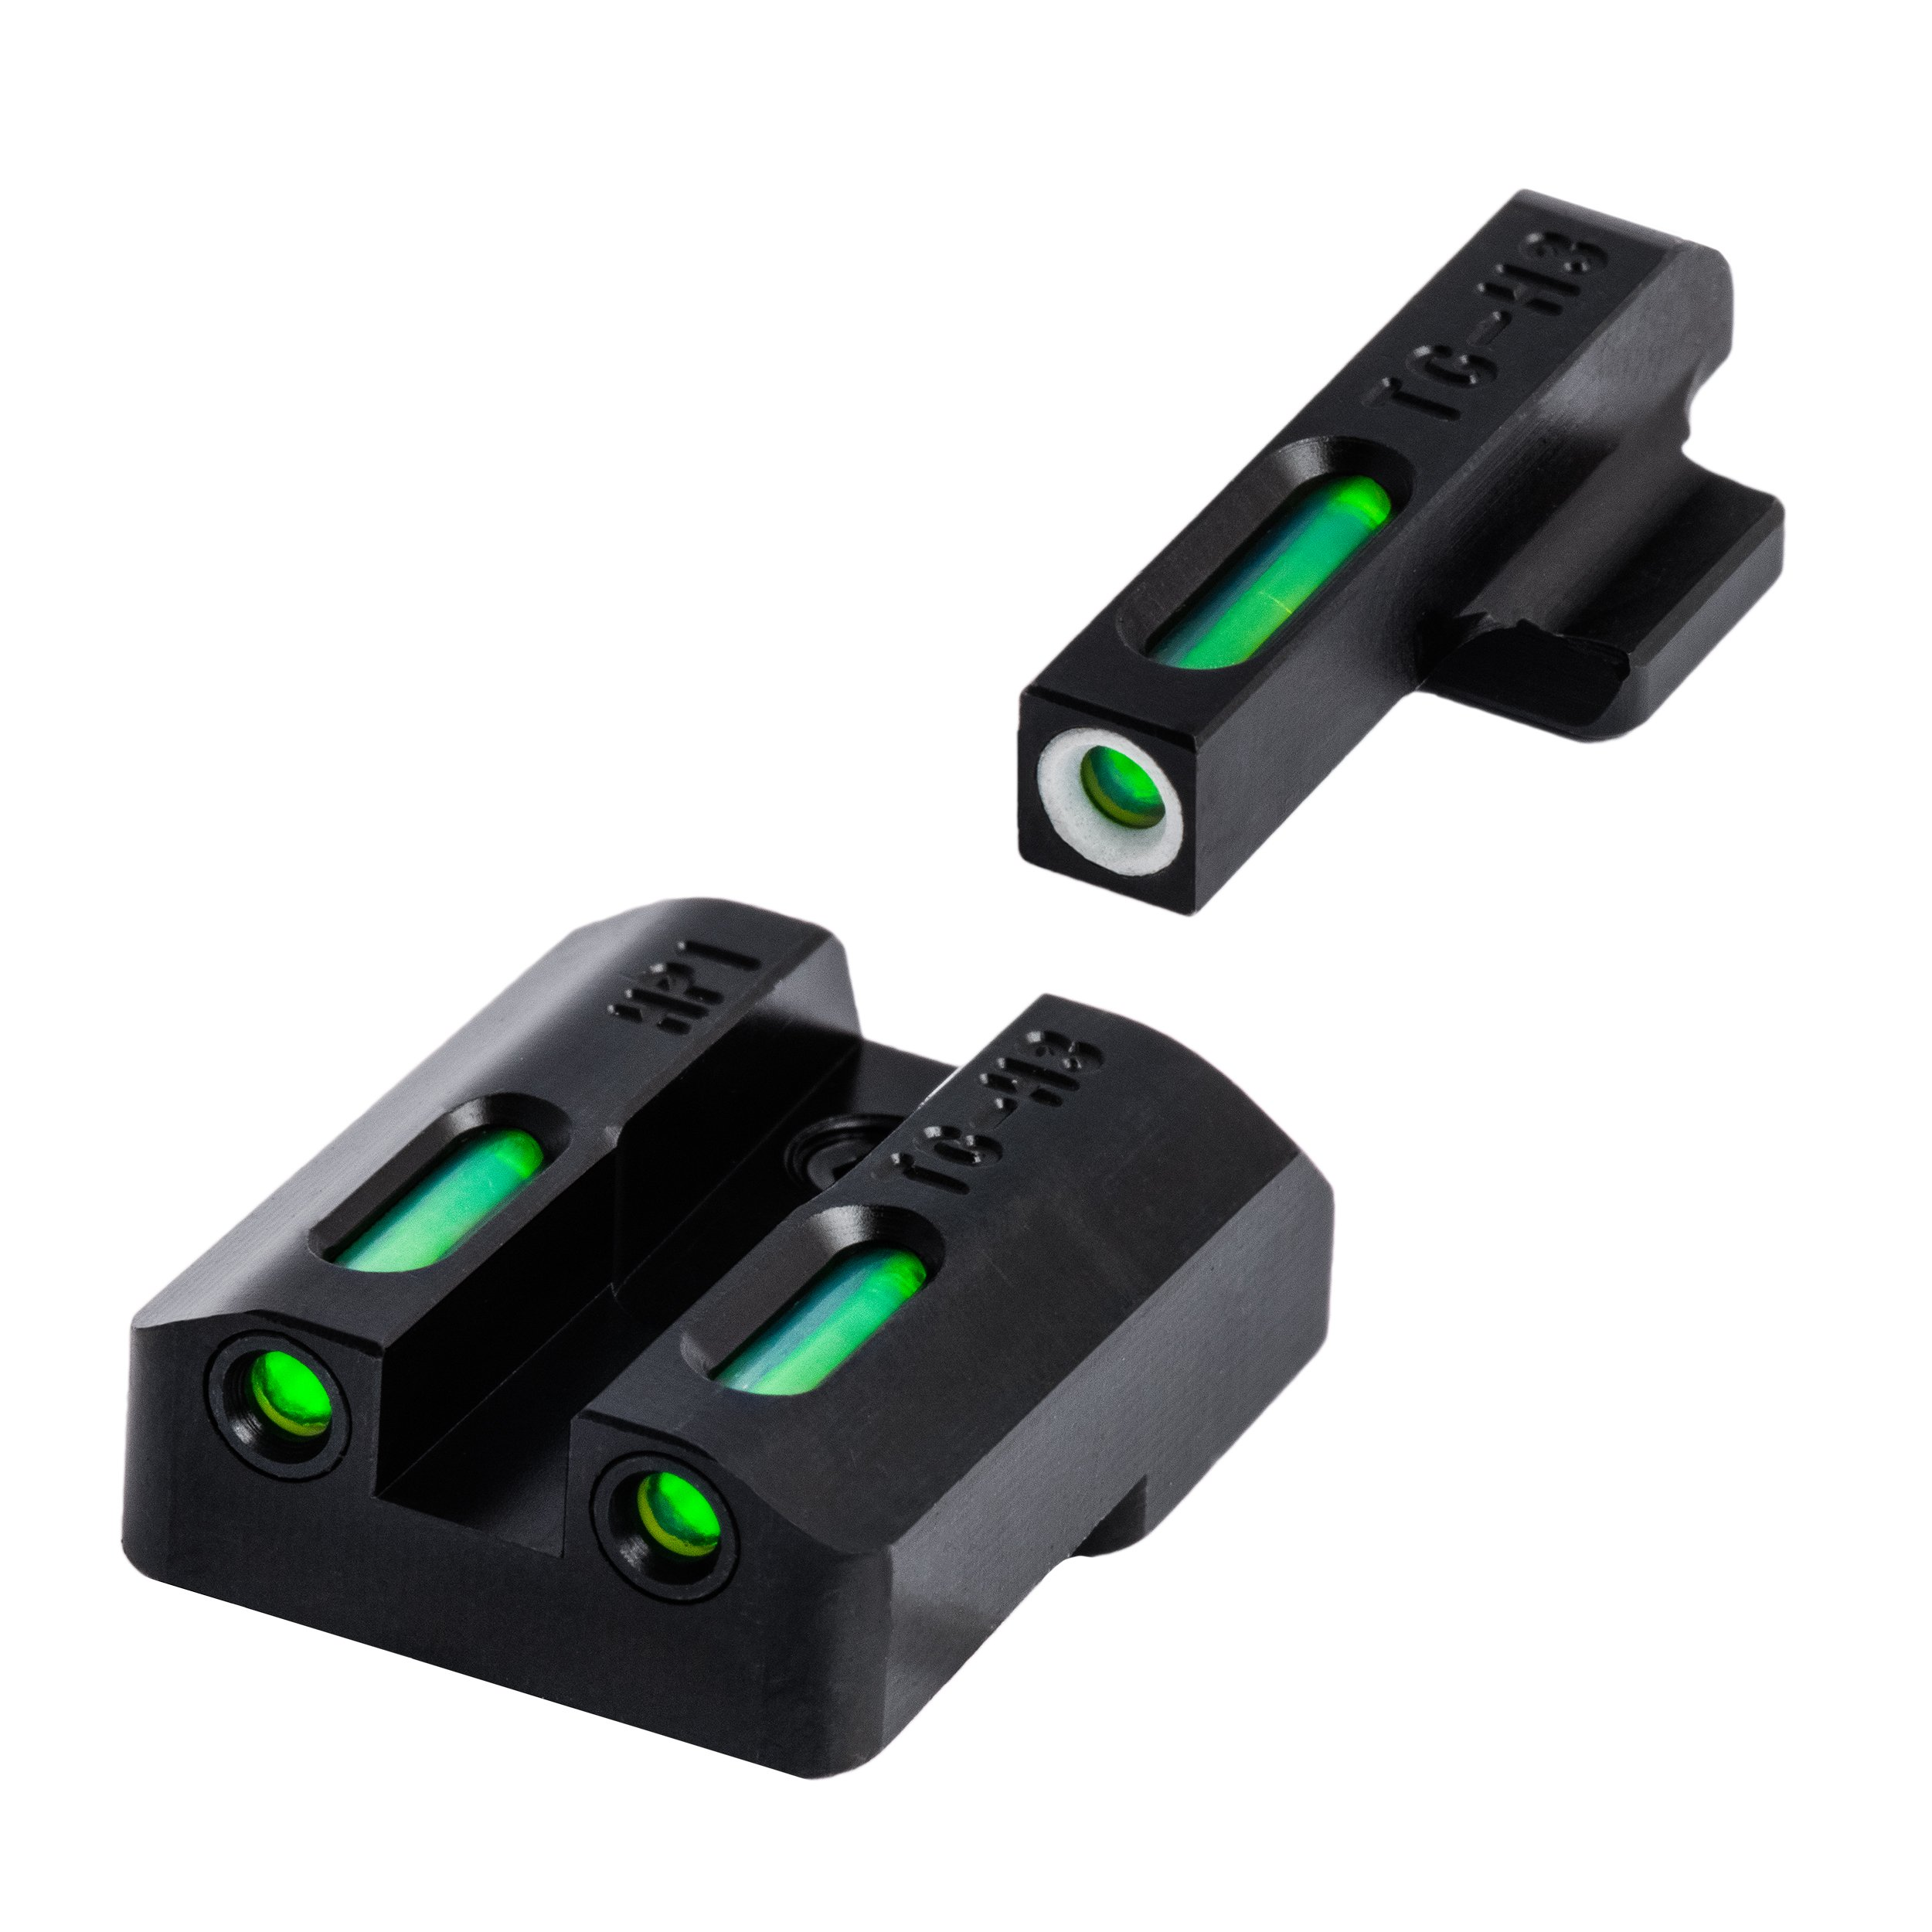 TRUGLO TFX Tritium and Fiber-Optic Xtreme Handgun Sights for H&K VP9, VP40, P30, P30SK, P30L, 45, 45 Tactical (Including Compact) by TRUGLO